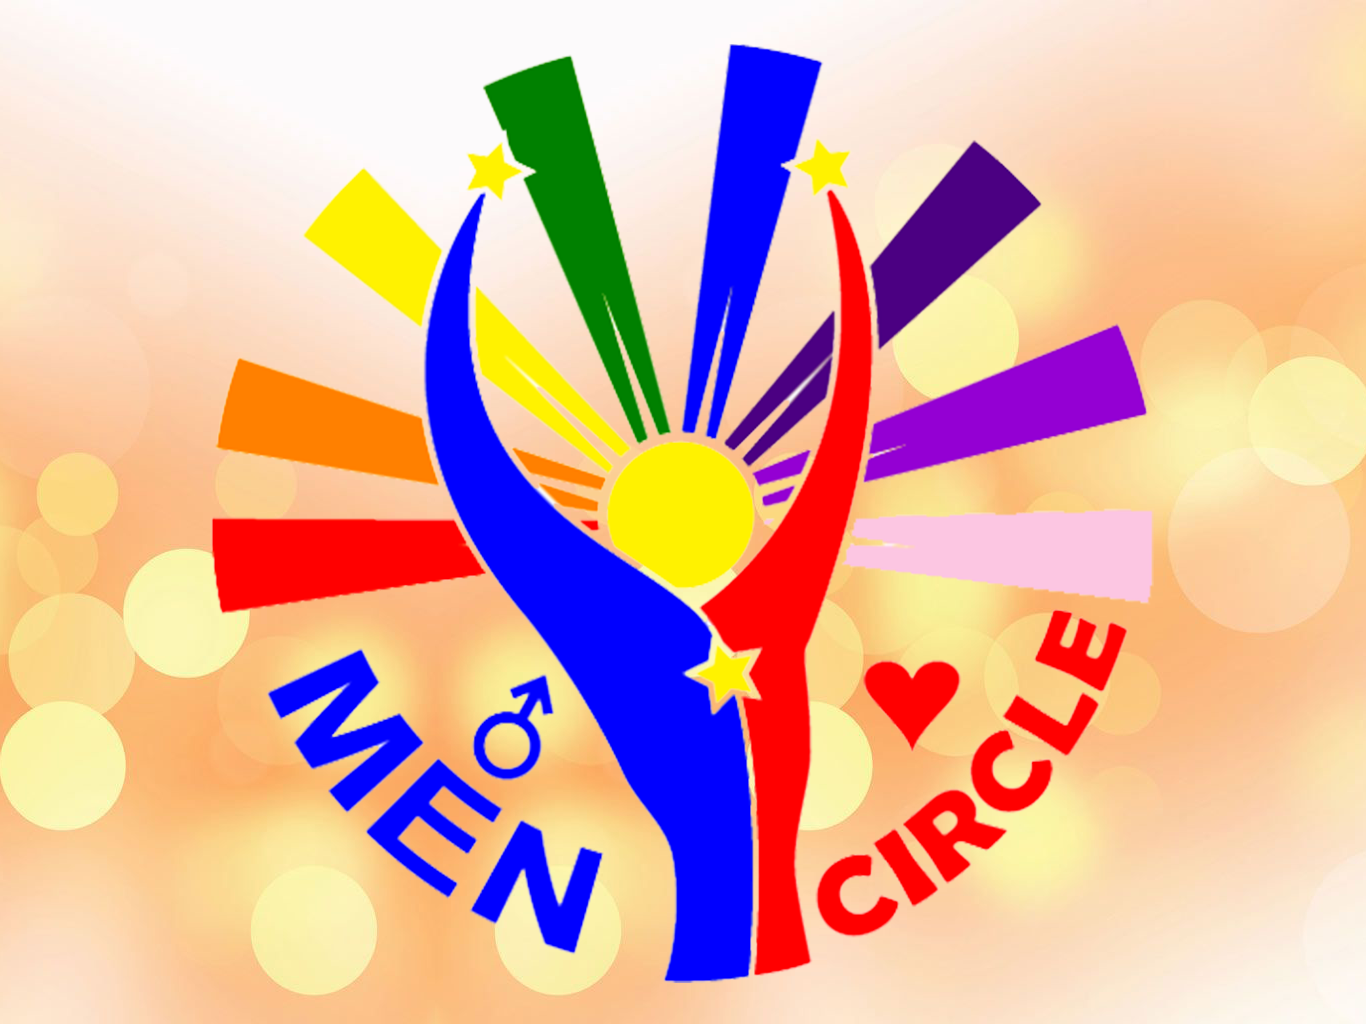 Pinoy gay live video chat room has been moved | Mencircle